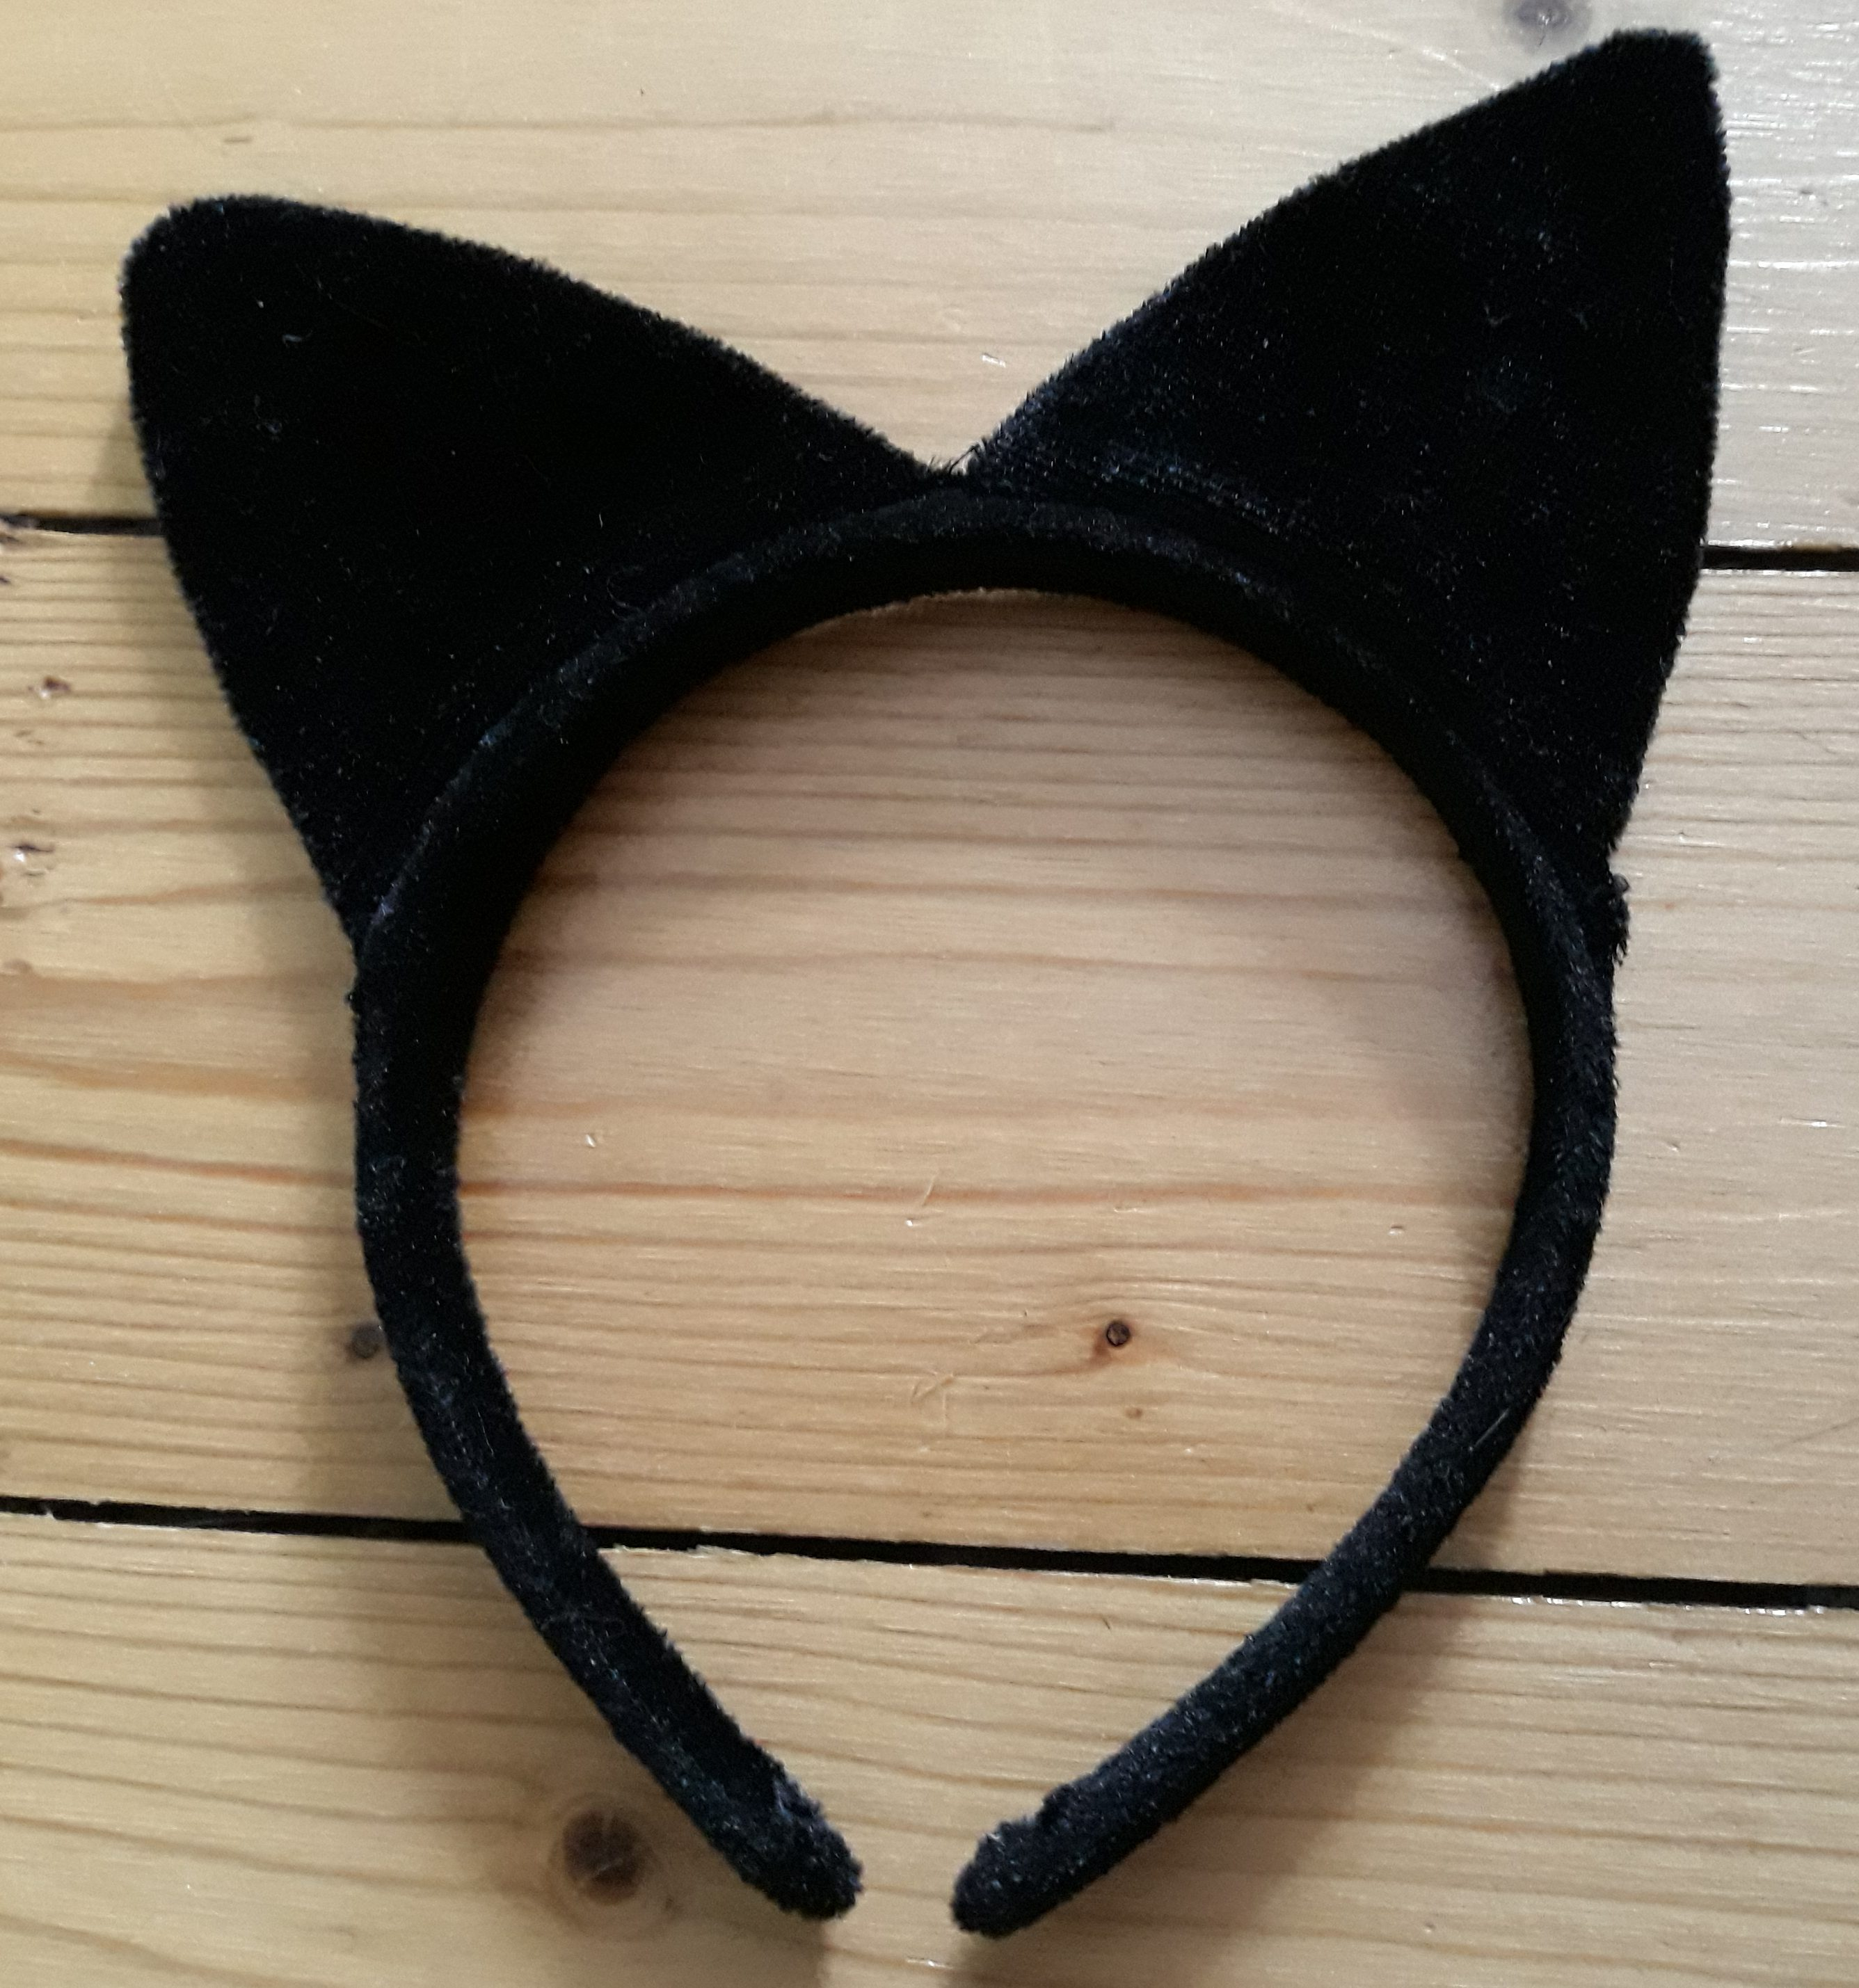 A pair of black cat ears on a headband. For a Masturbation Monday post called On The Prowl